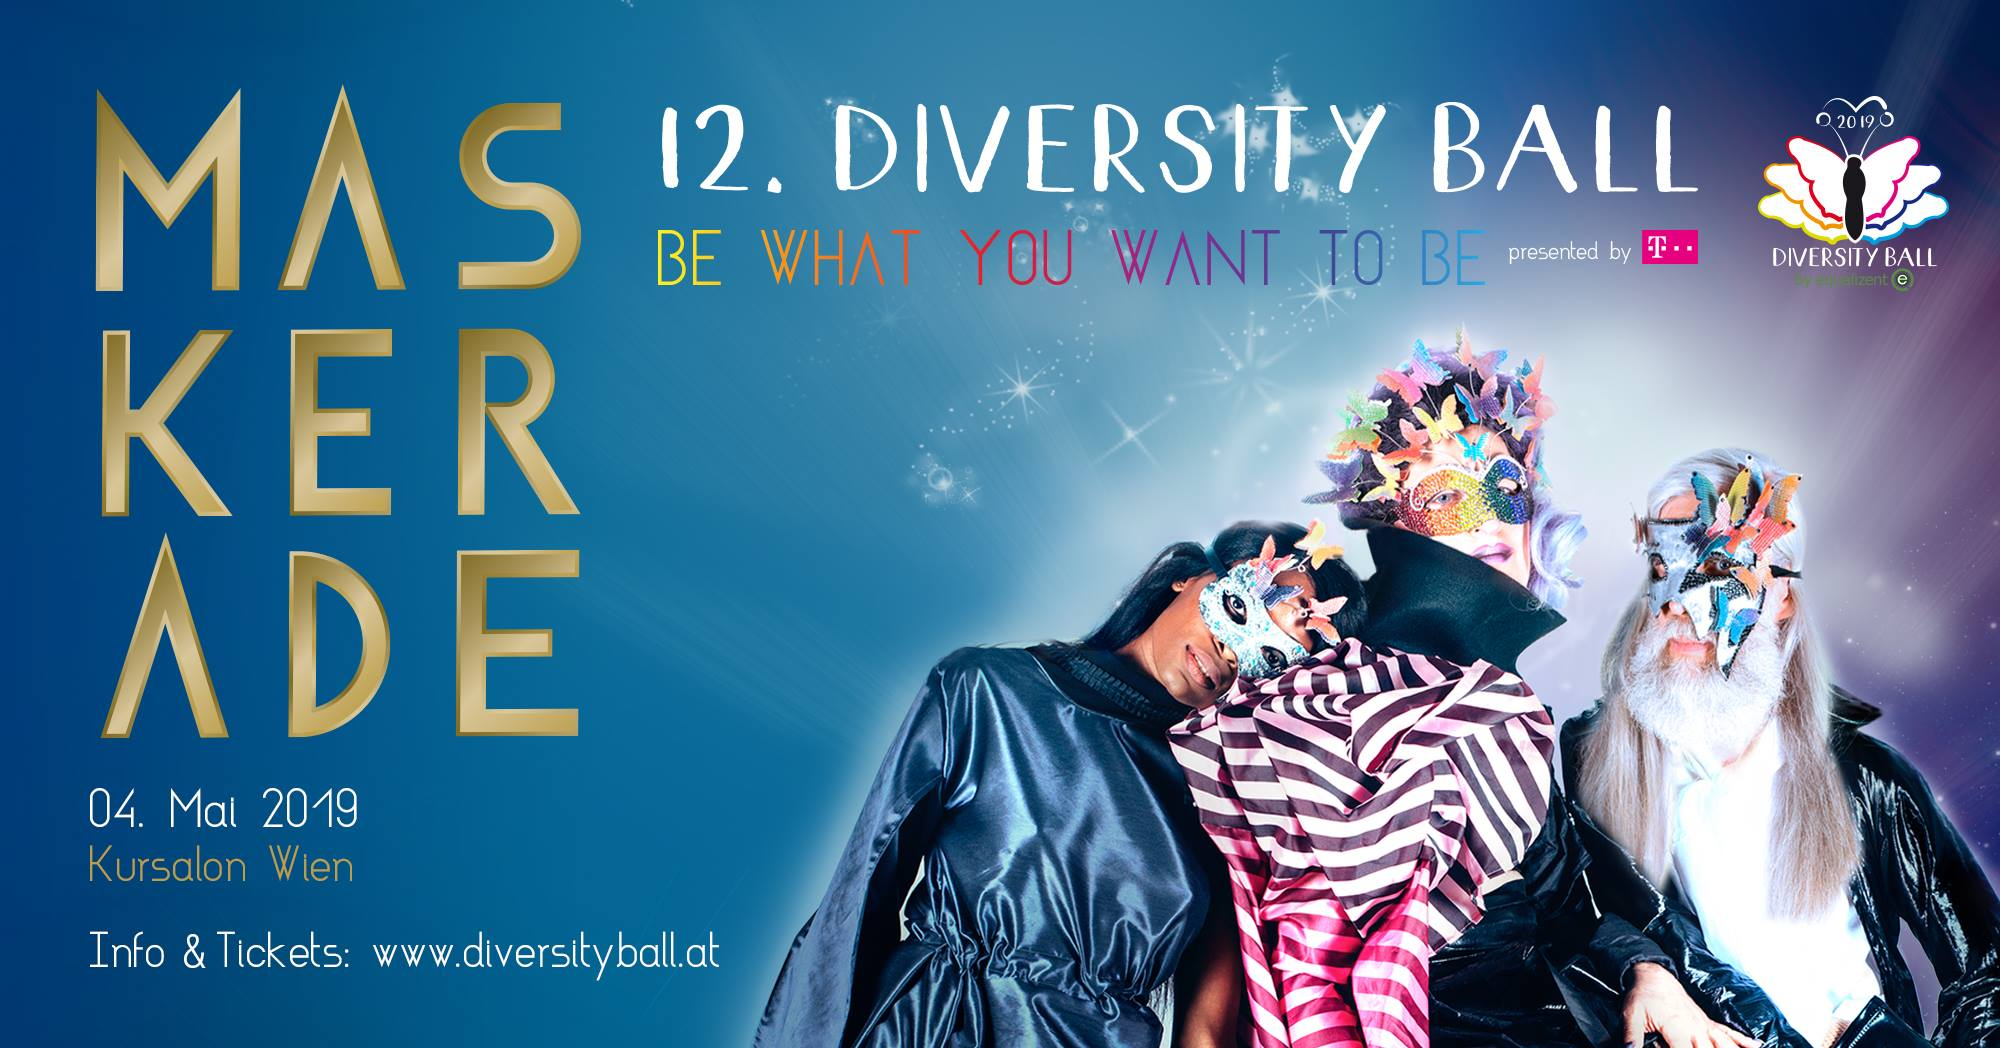 12 Diversity Ball Presented By T Mobile Viennainsideat